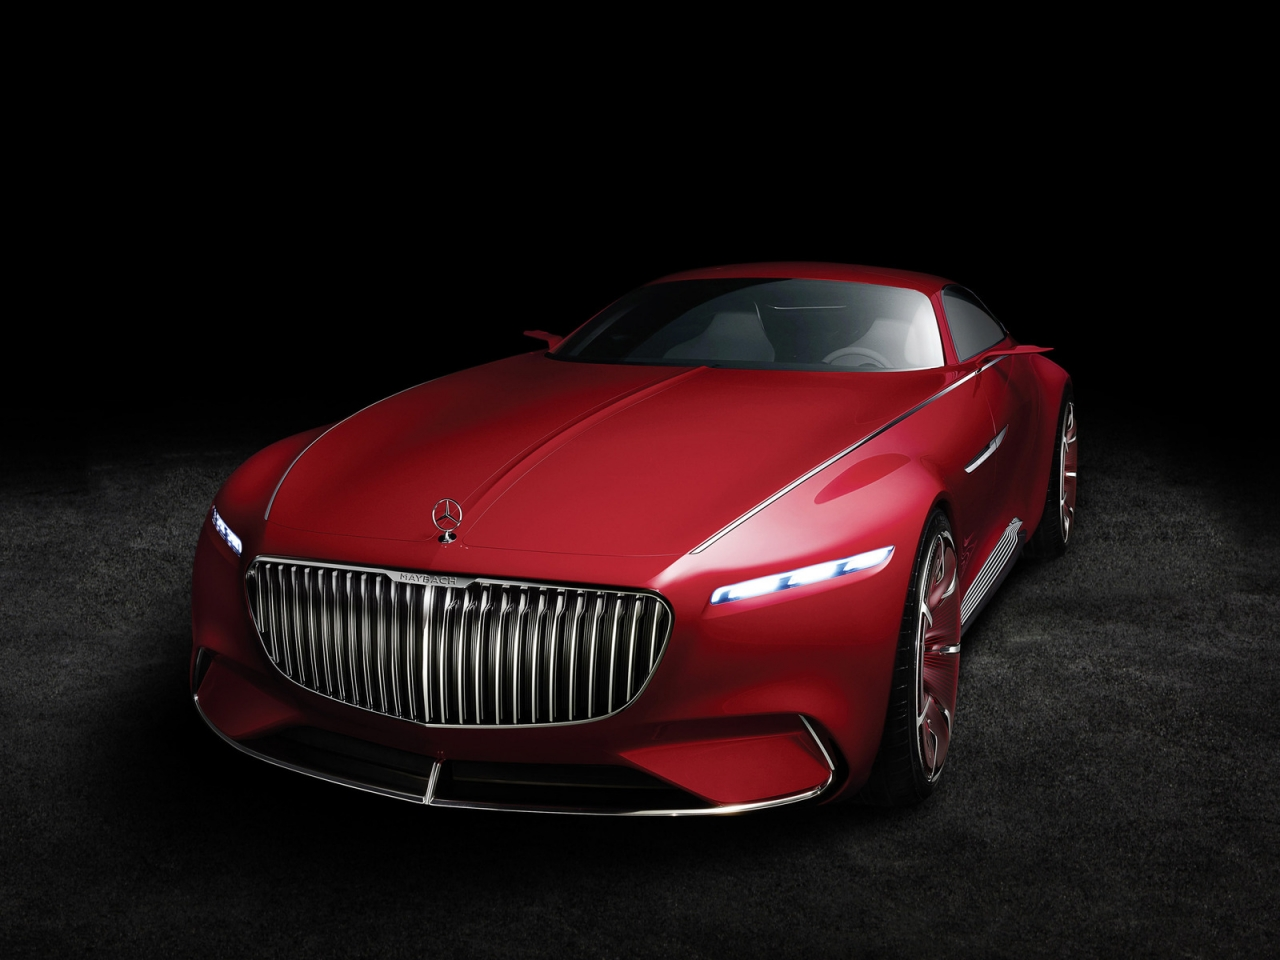 2016 Vision Mercedes Maybach 6 for 1280 x 960 resolution